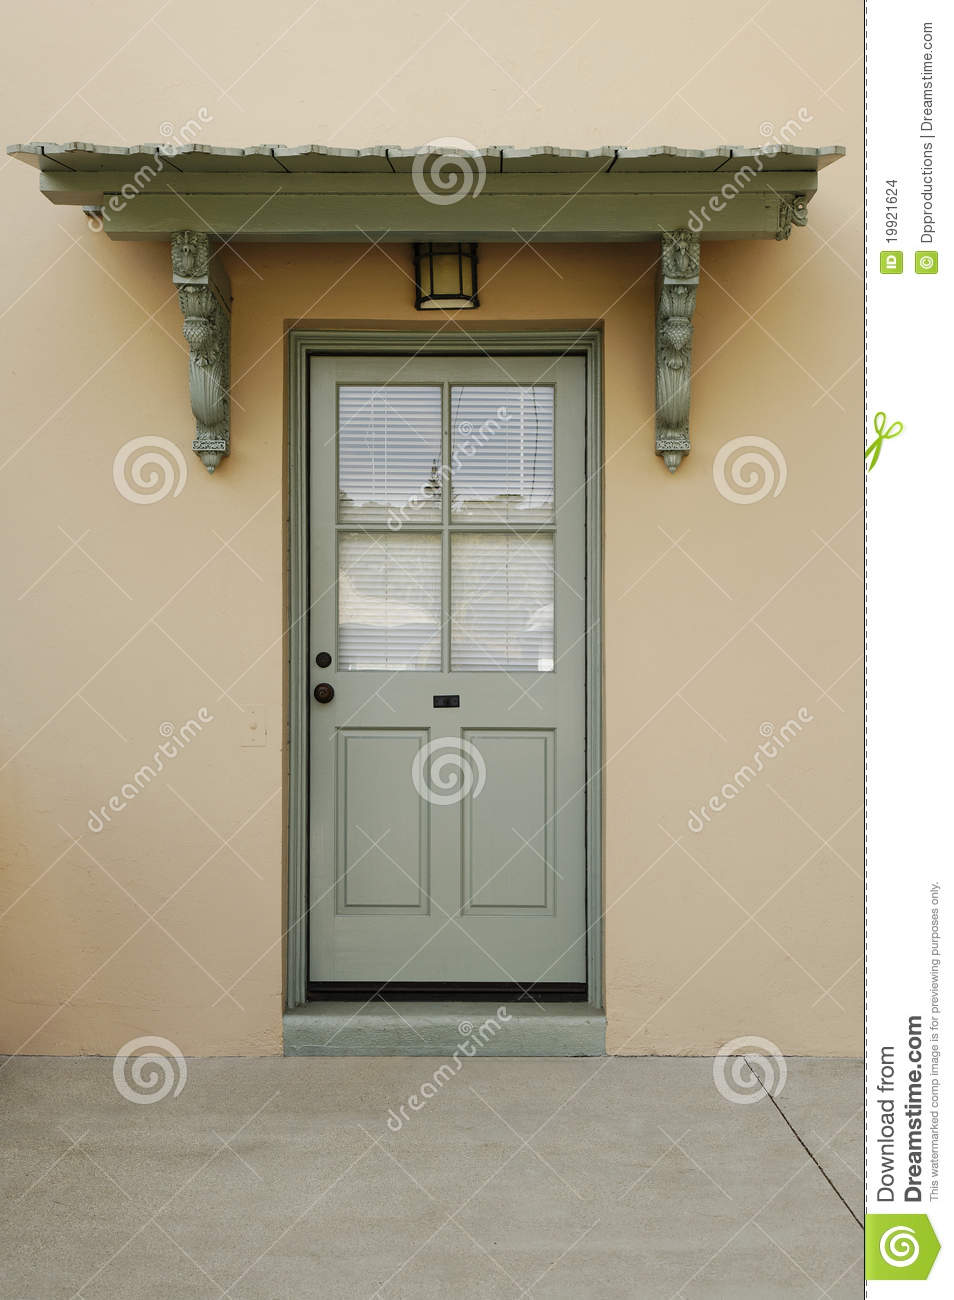 royalty free stock photo download exterior of a back door